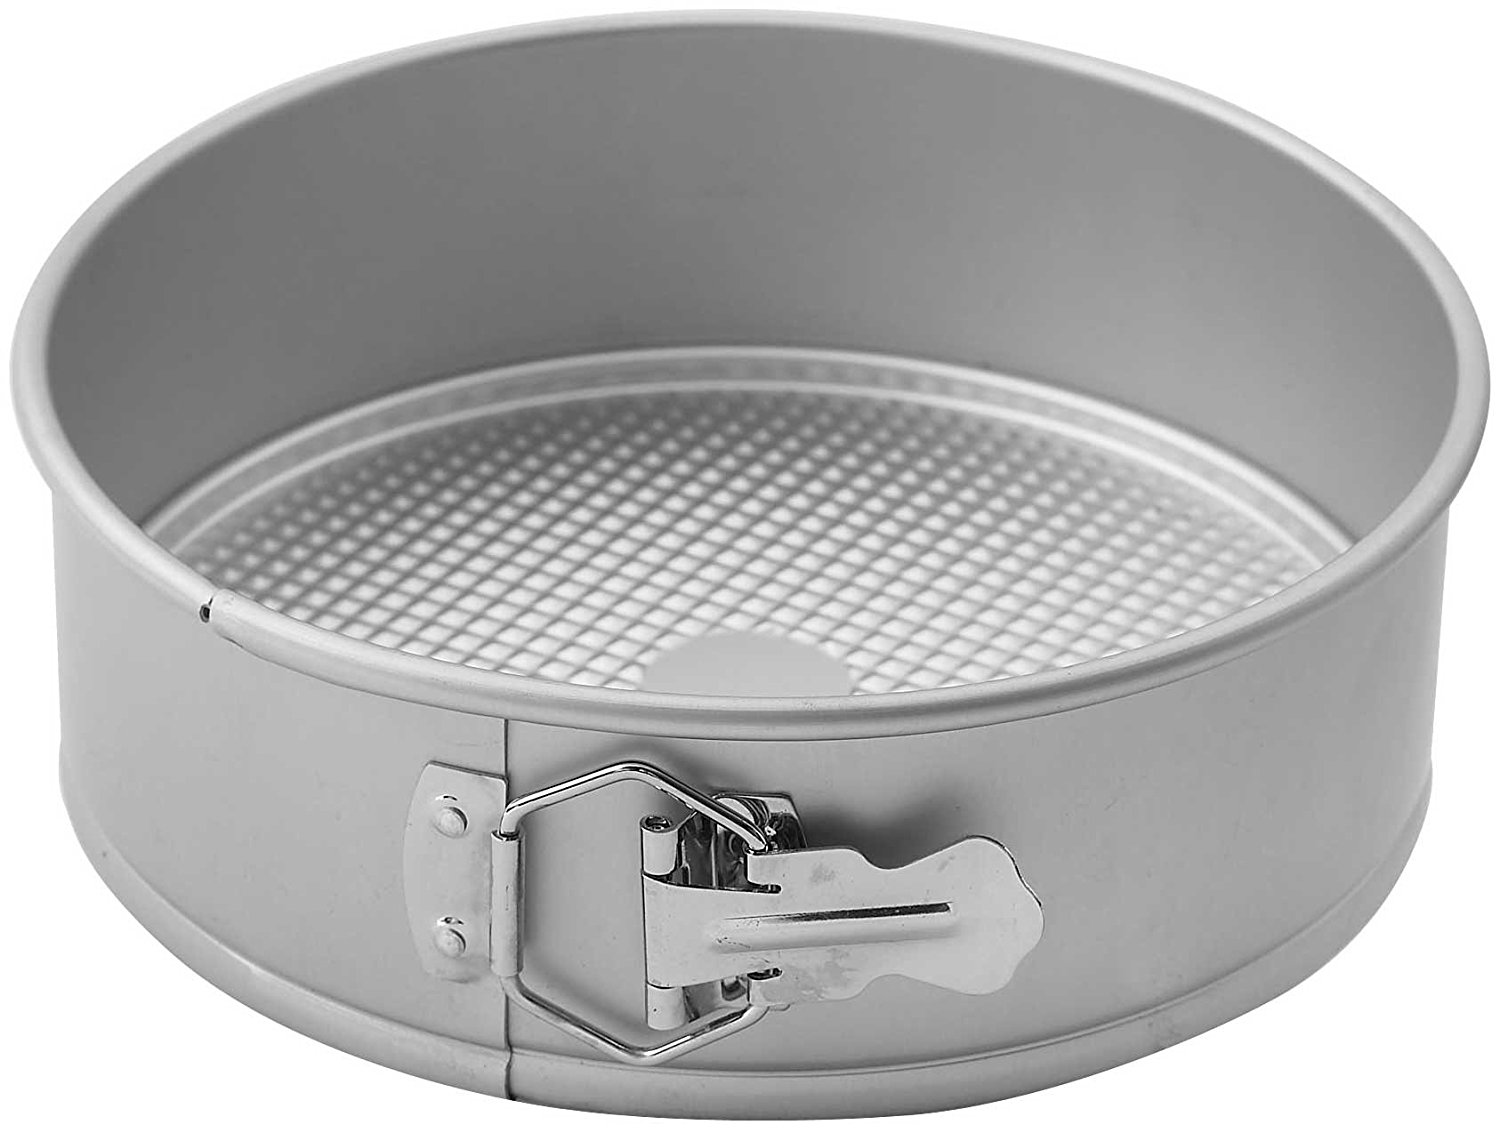 AASP-093 Springform Pan with Detachable Bottom, 9-Inch, Anodized Aluminum, Deluxe anodized aluminum By Winco by